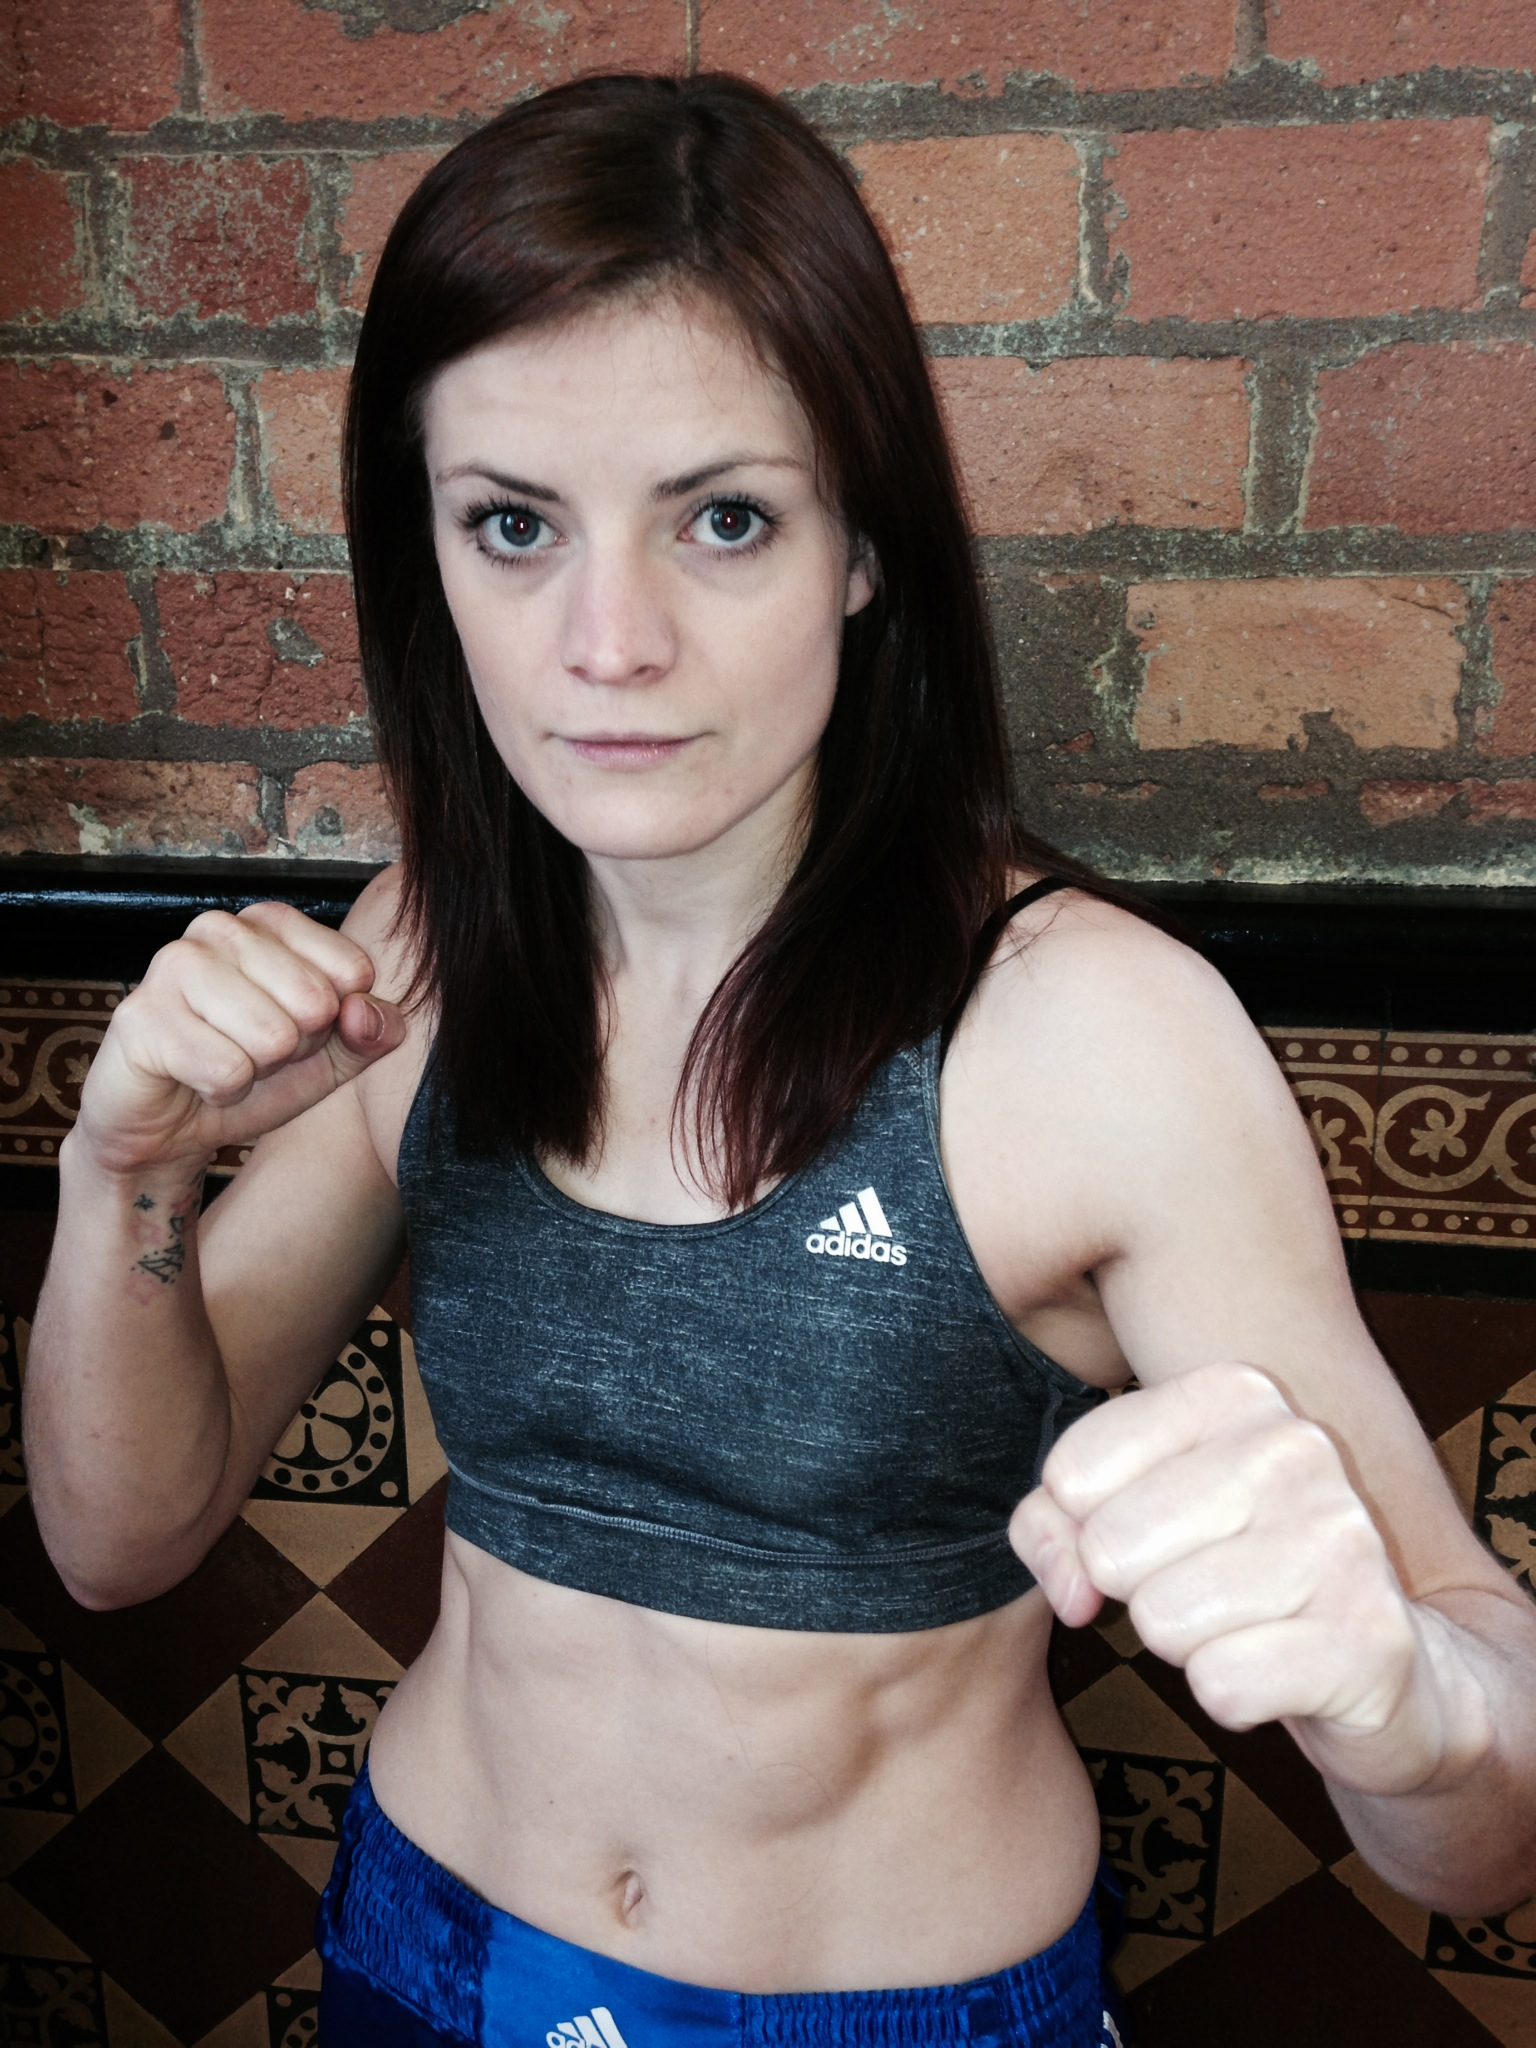 Rachel Young, Age 29, Weight 54kg